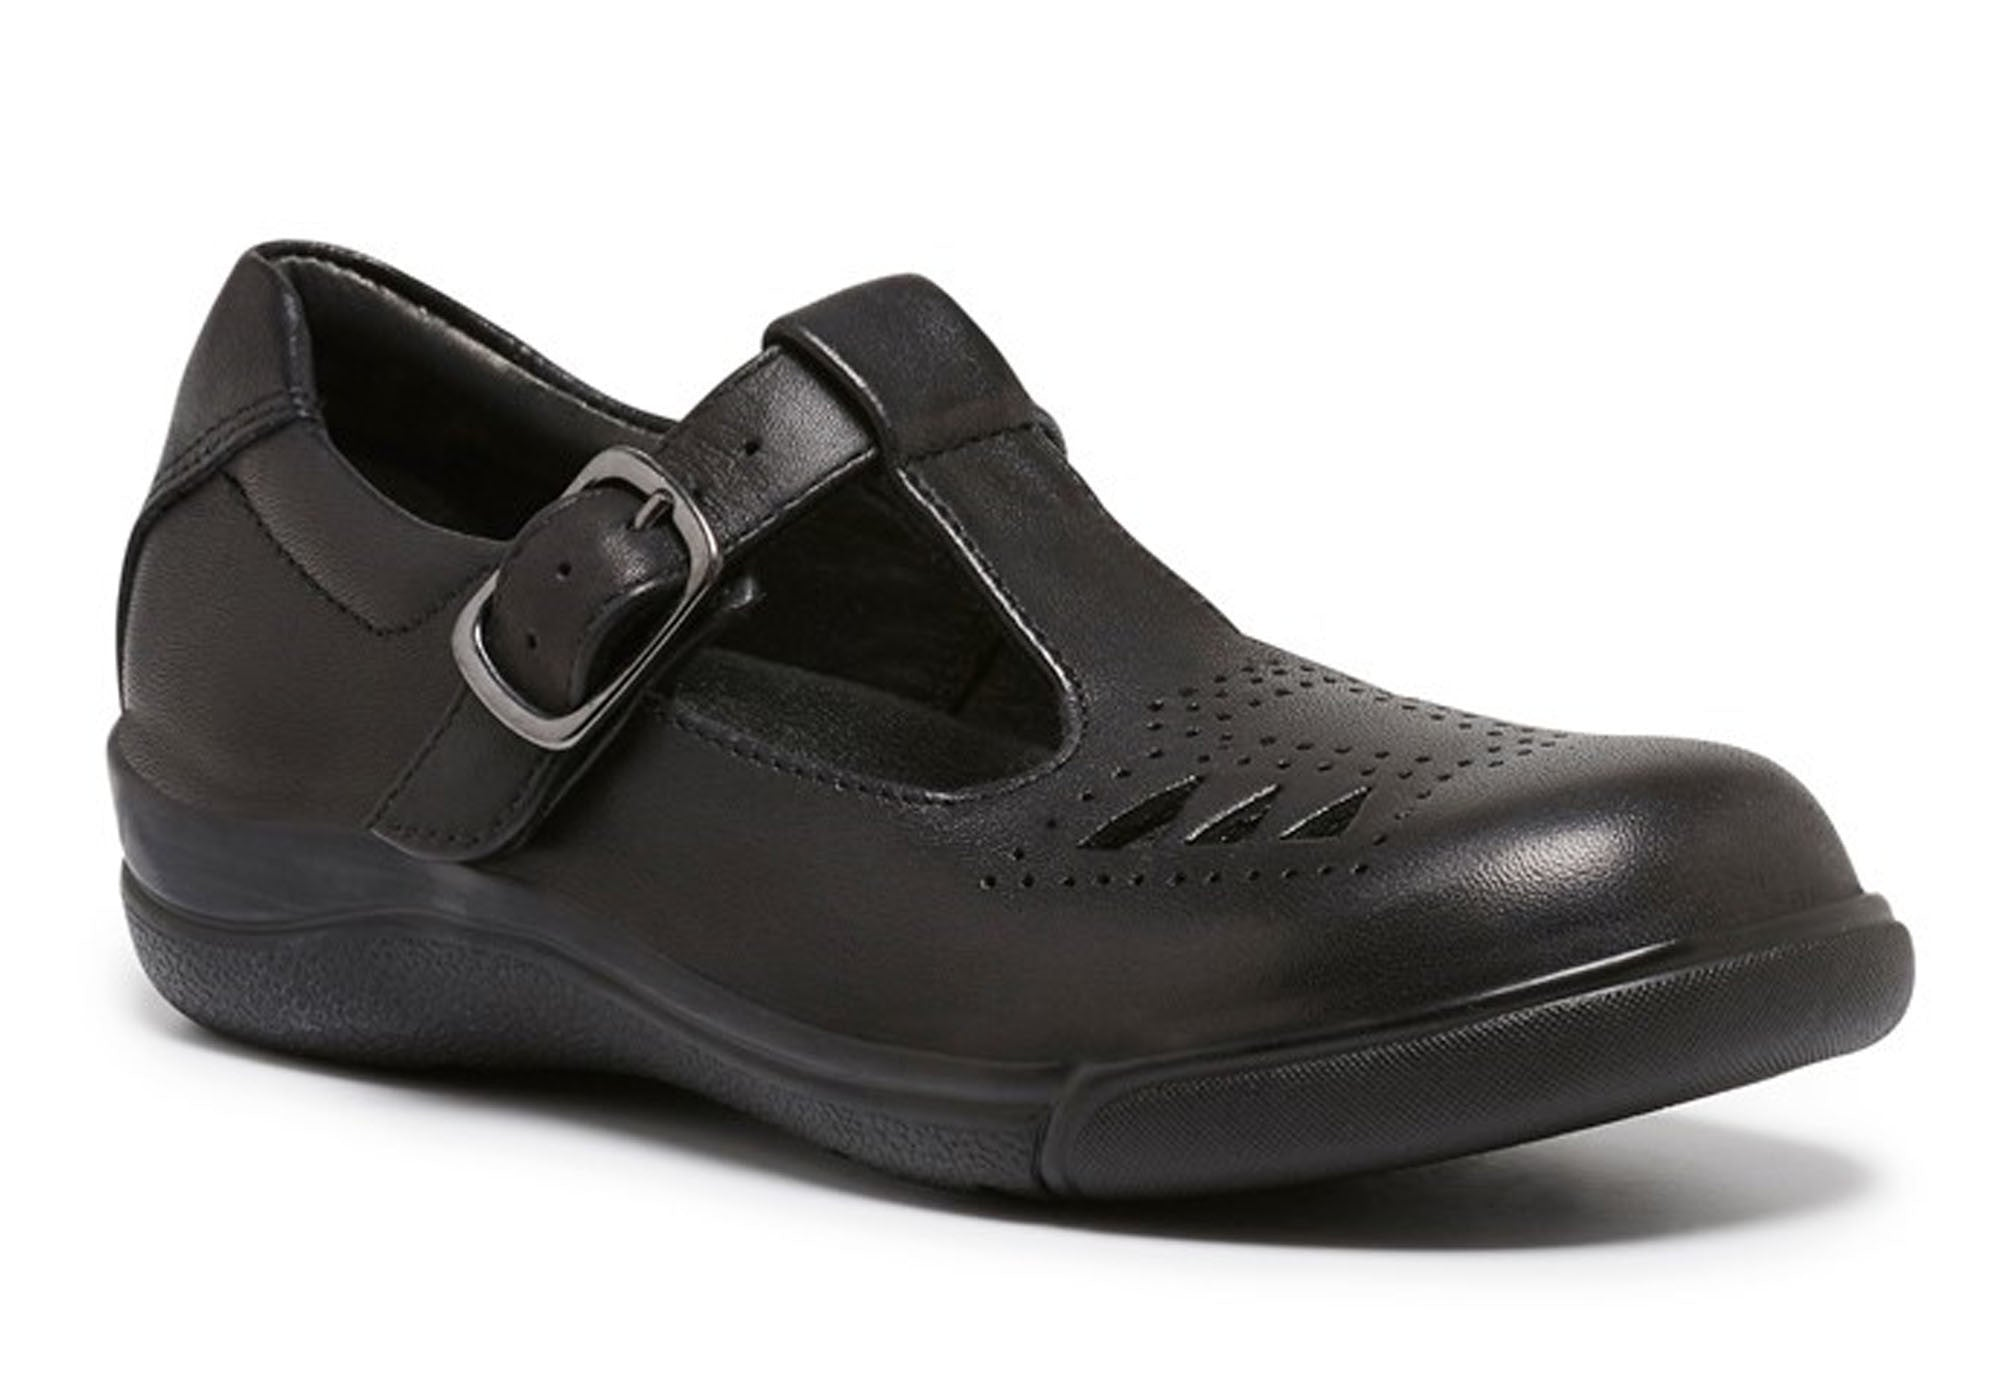 Clarks Pupil Girls Black Leather Tbar School Shoes | Brand ...